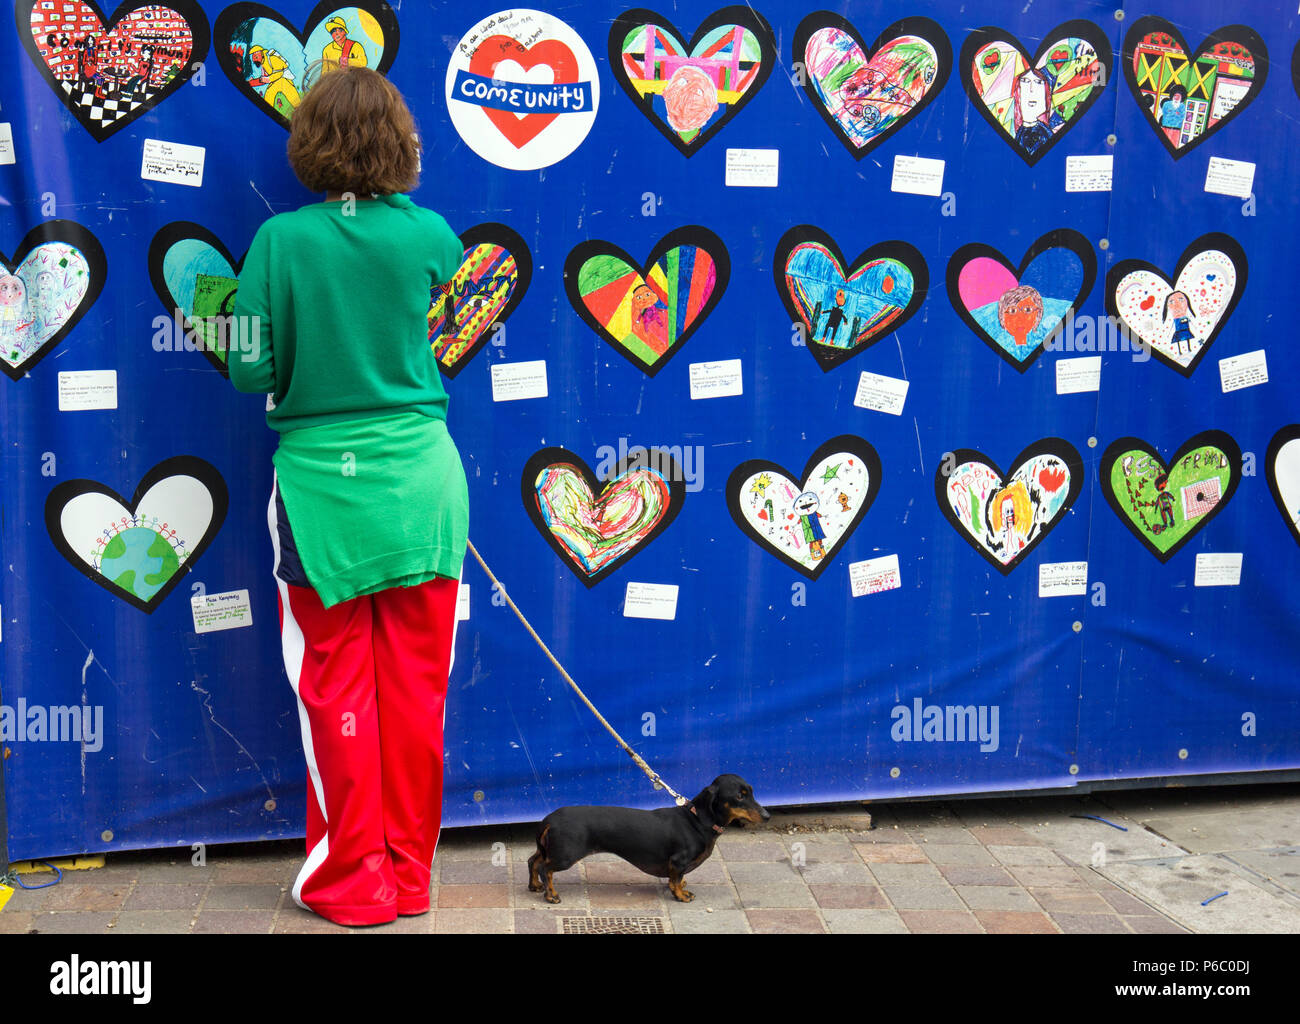 The first anniversary of the Grenfell Tower fire which claimed 72 lives. Memorial wall, South Kensington, London, UK, 14th June 2018. - Stock Image